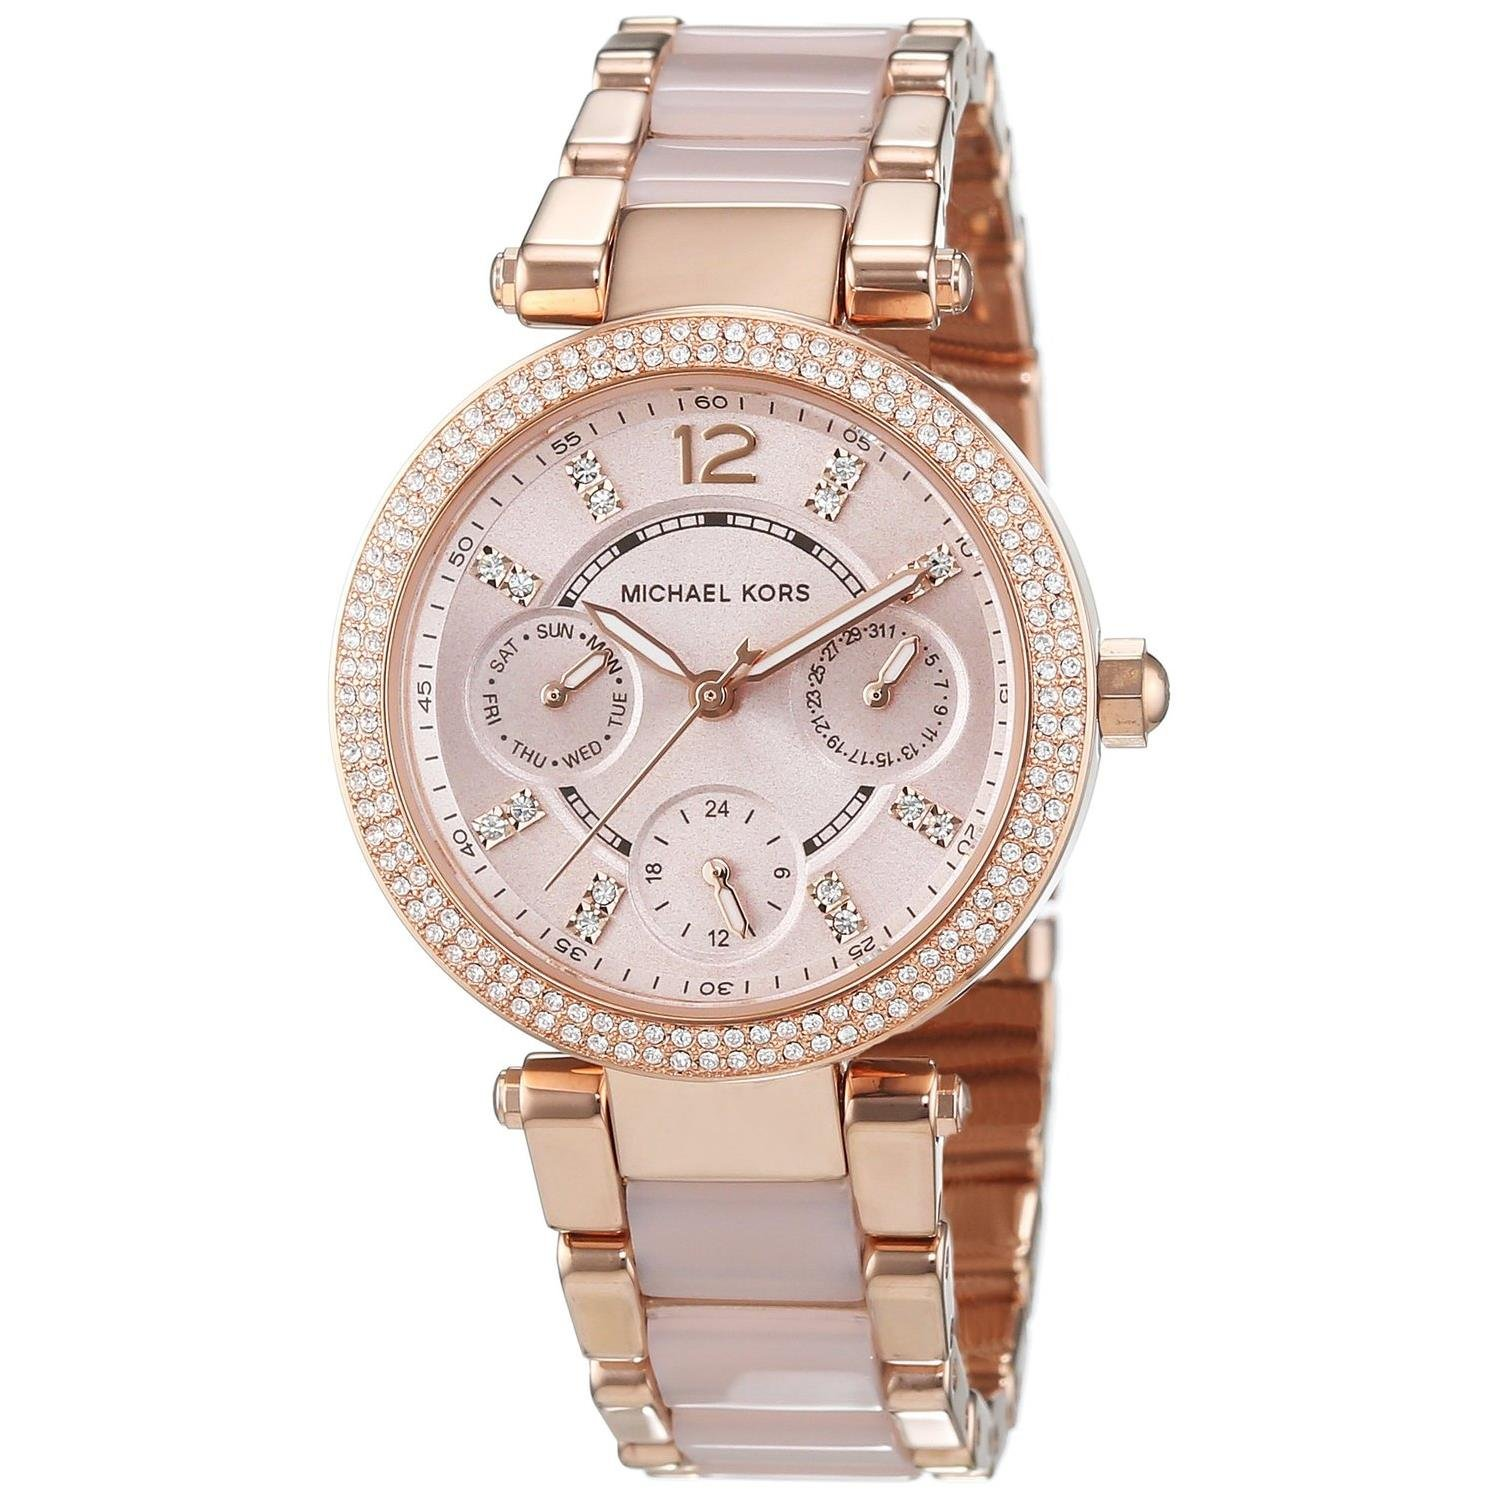 Michael Kors Mini Parker Analog Gold Dial Women's Watch - MK6110